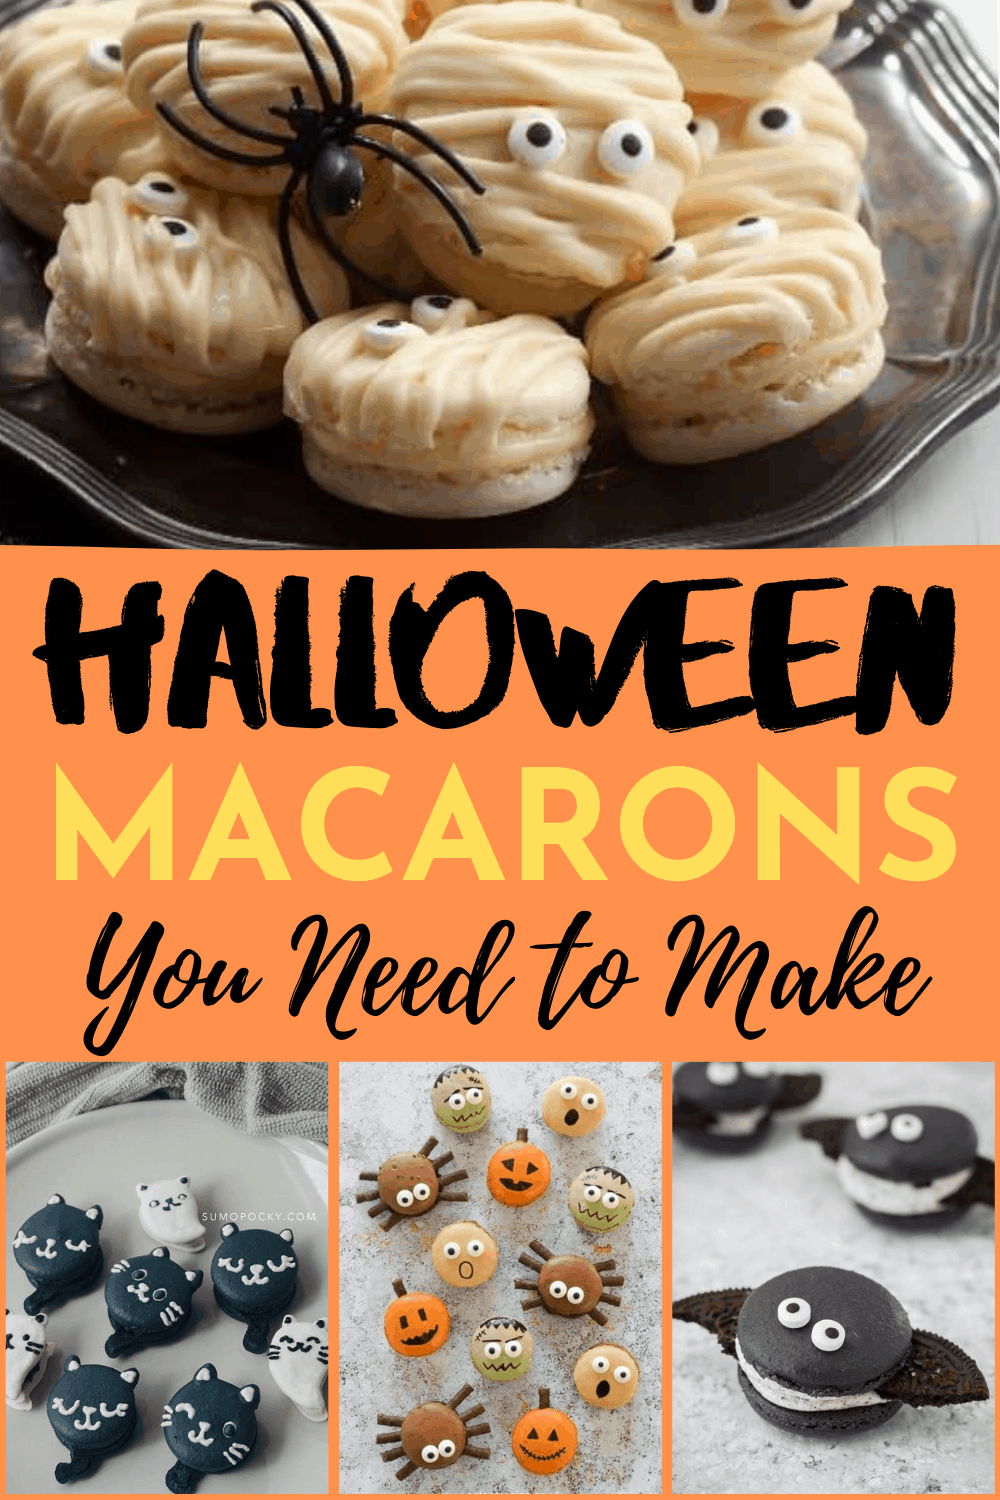 Halloween Macarons That Will Make You Scream